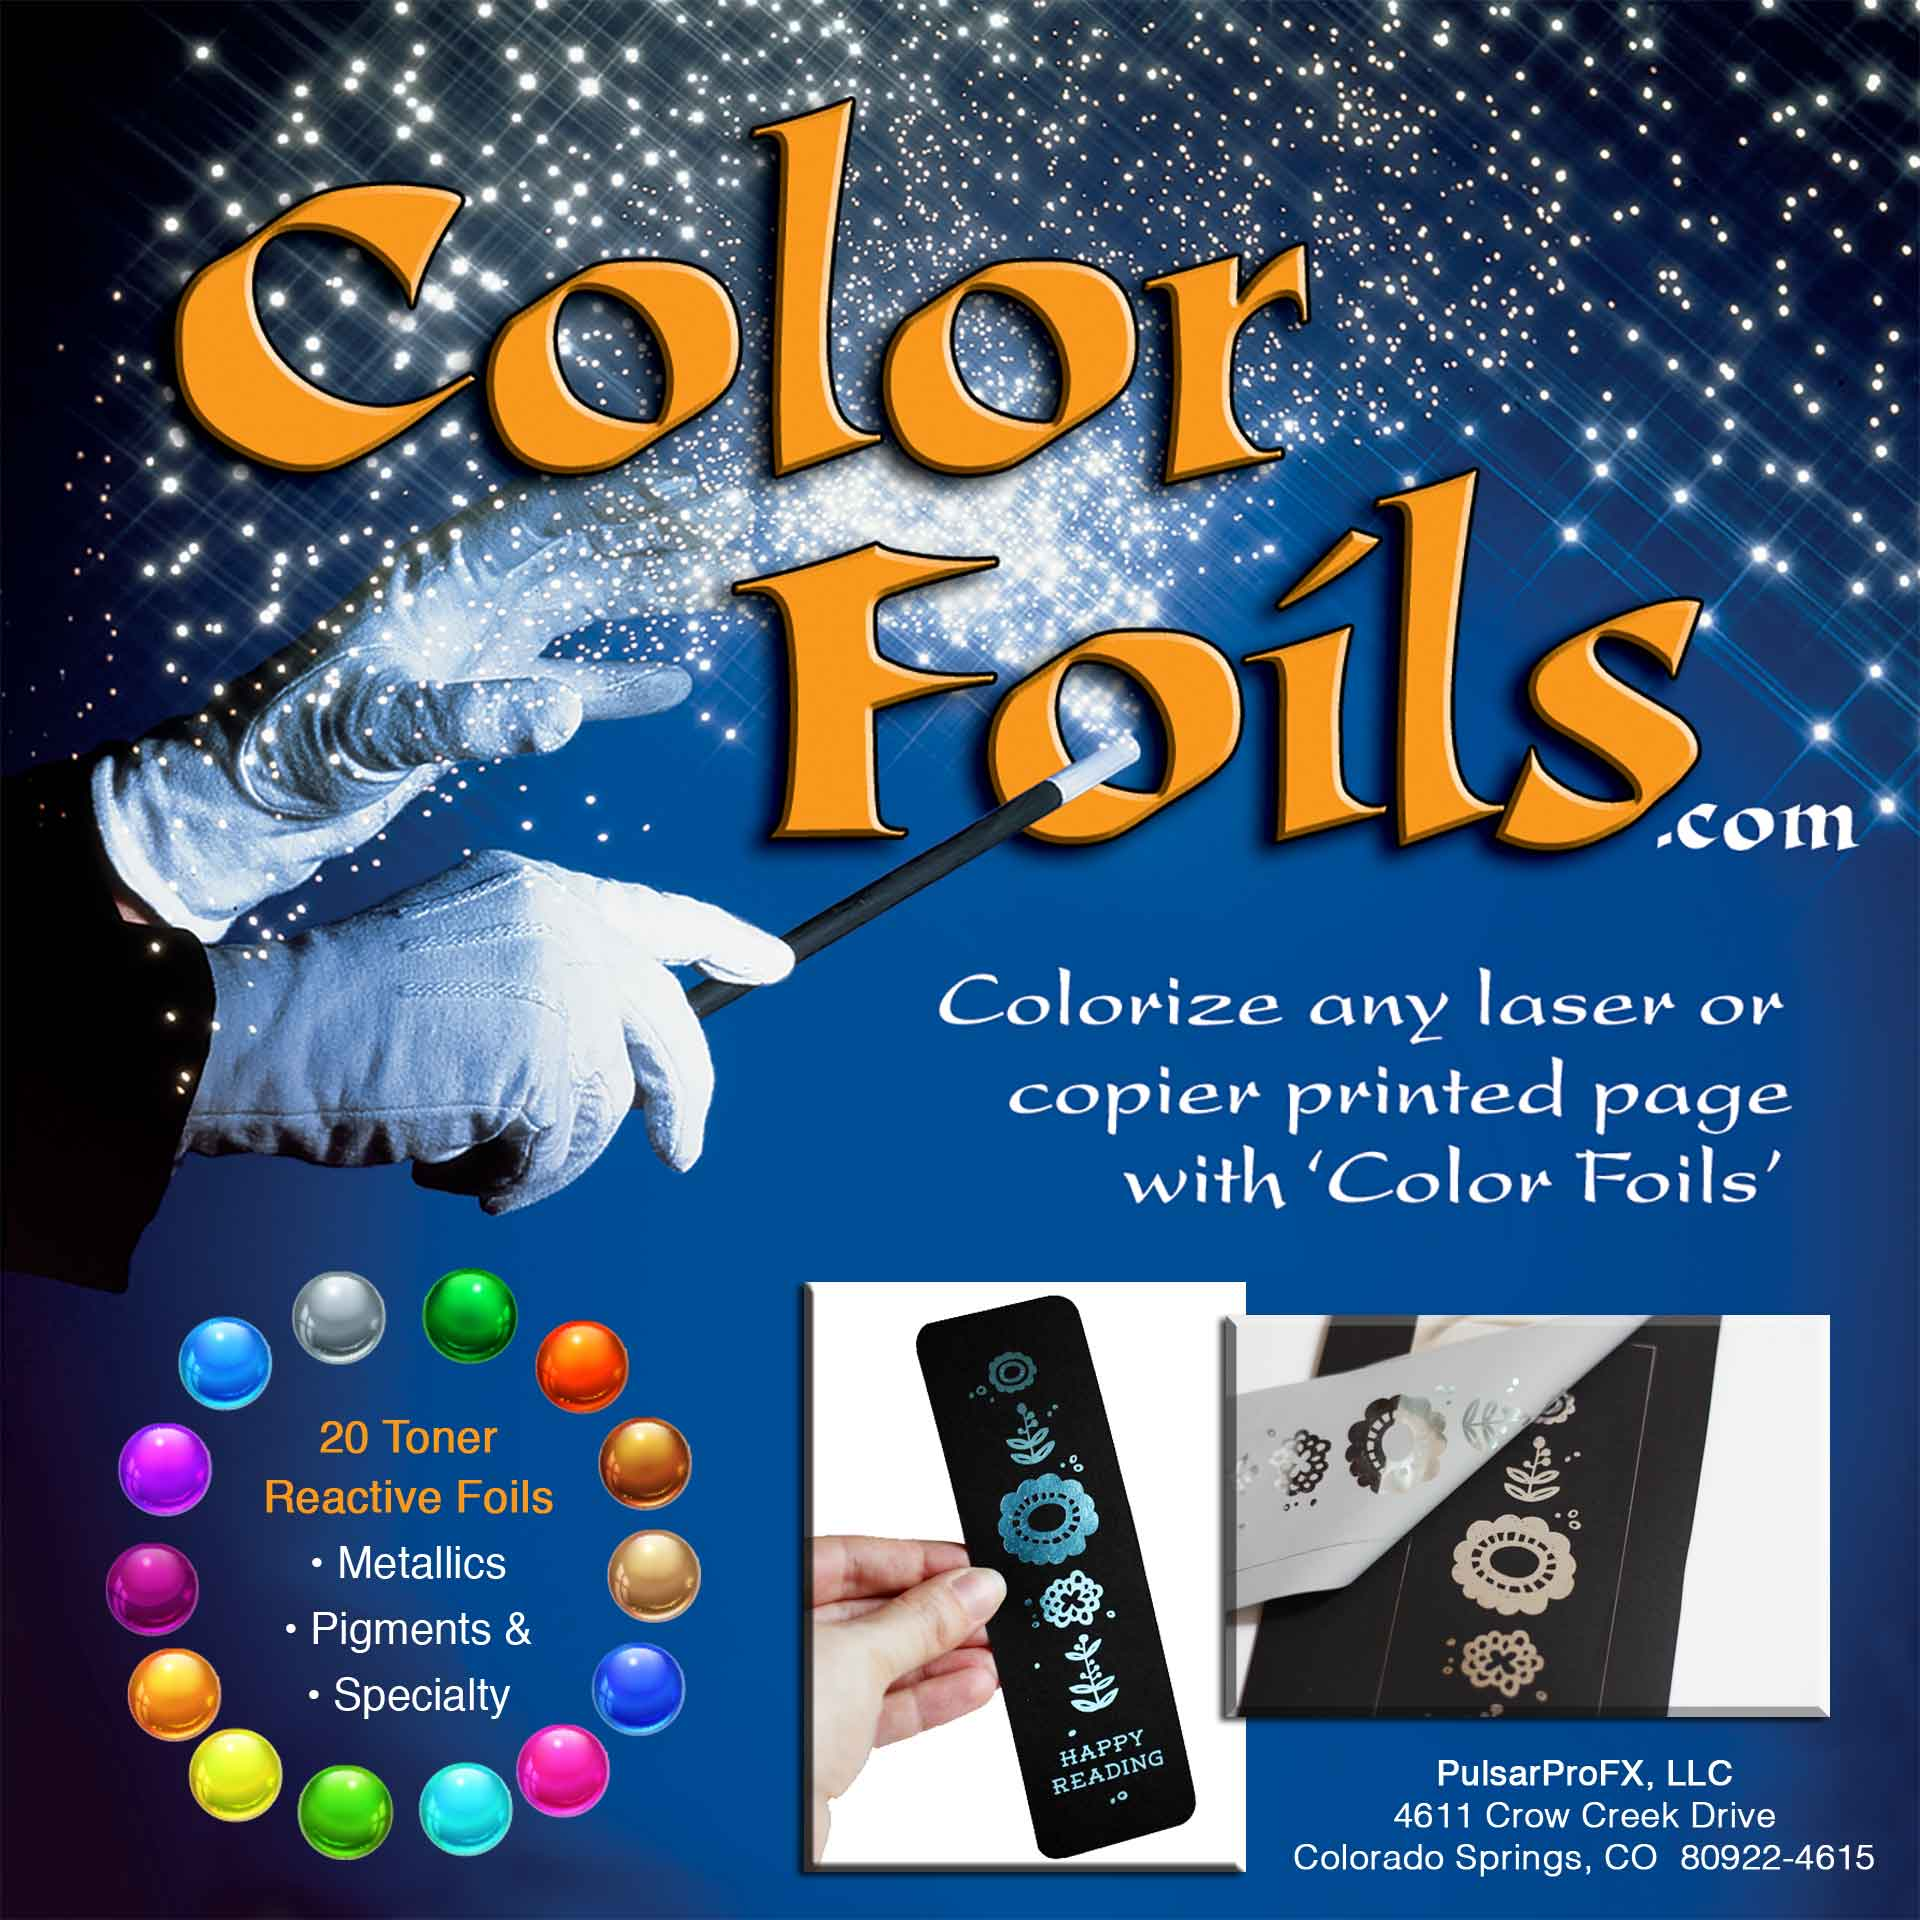 colorfoils.com